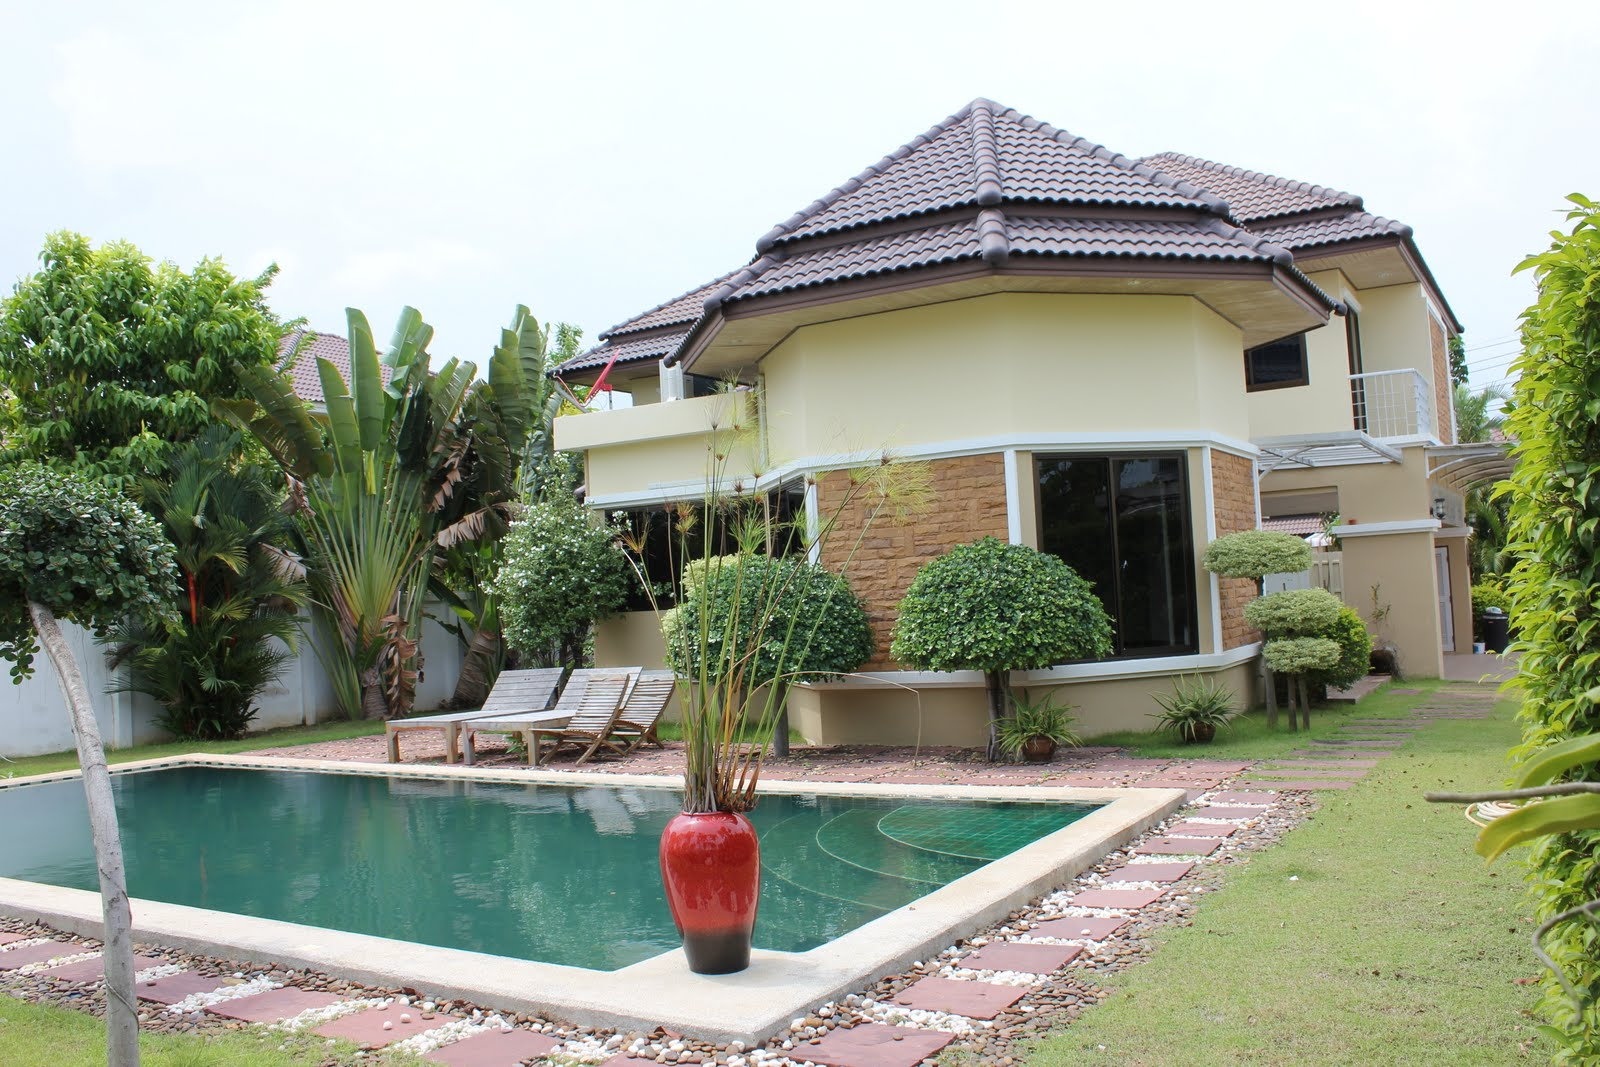 Nice house between rayong and map ta phut for sale or rent - Houses with swimming pools to rent ...